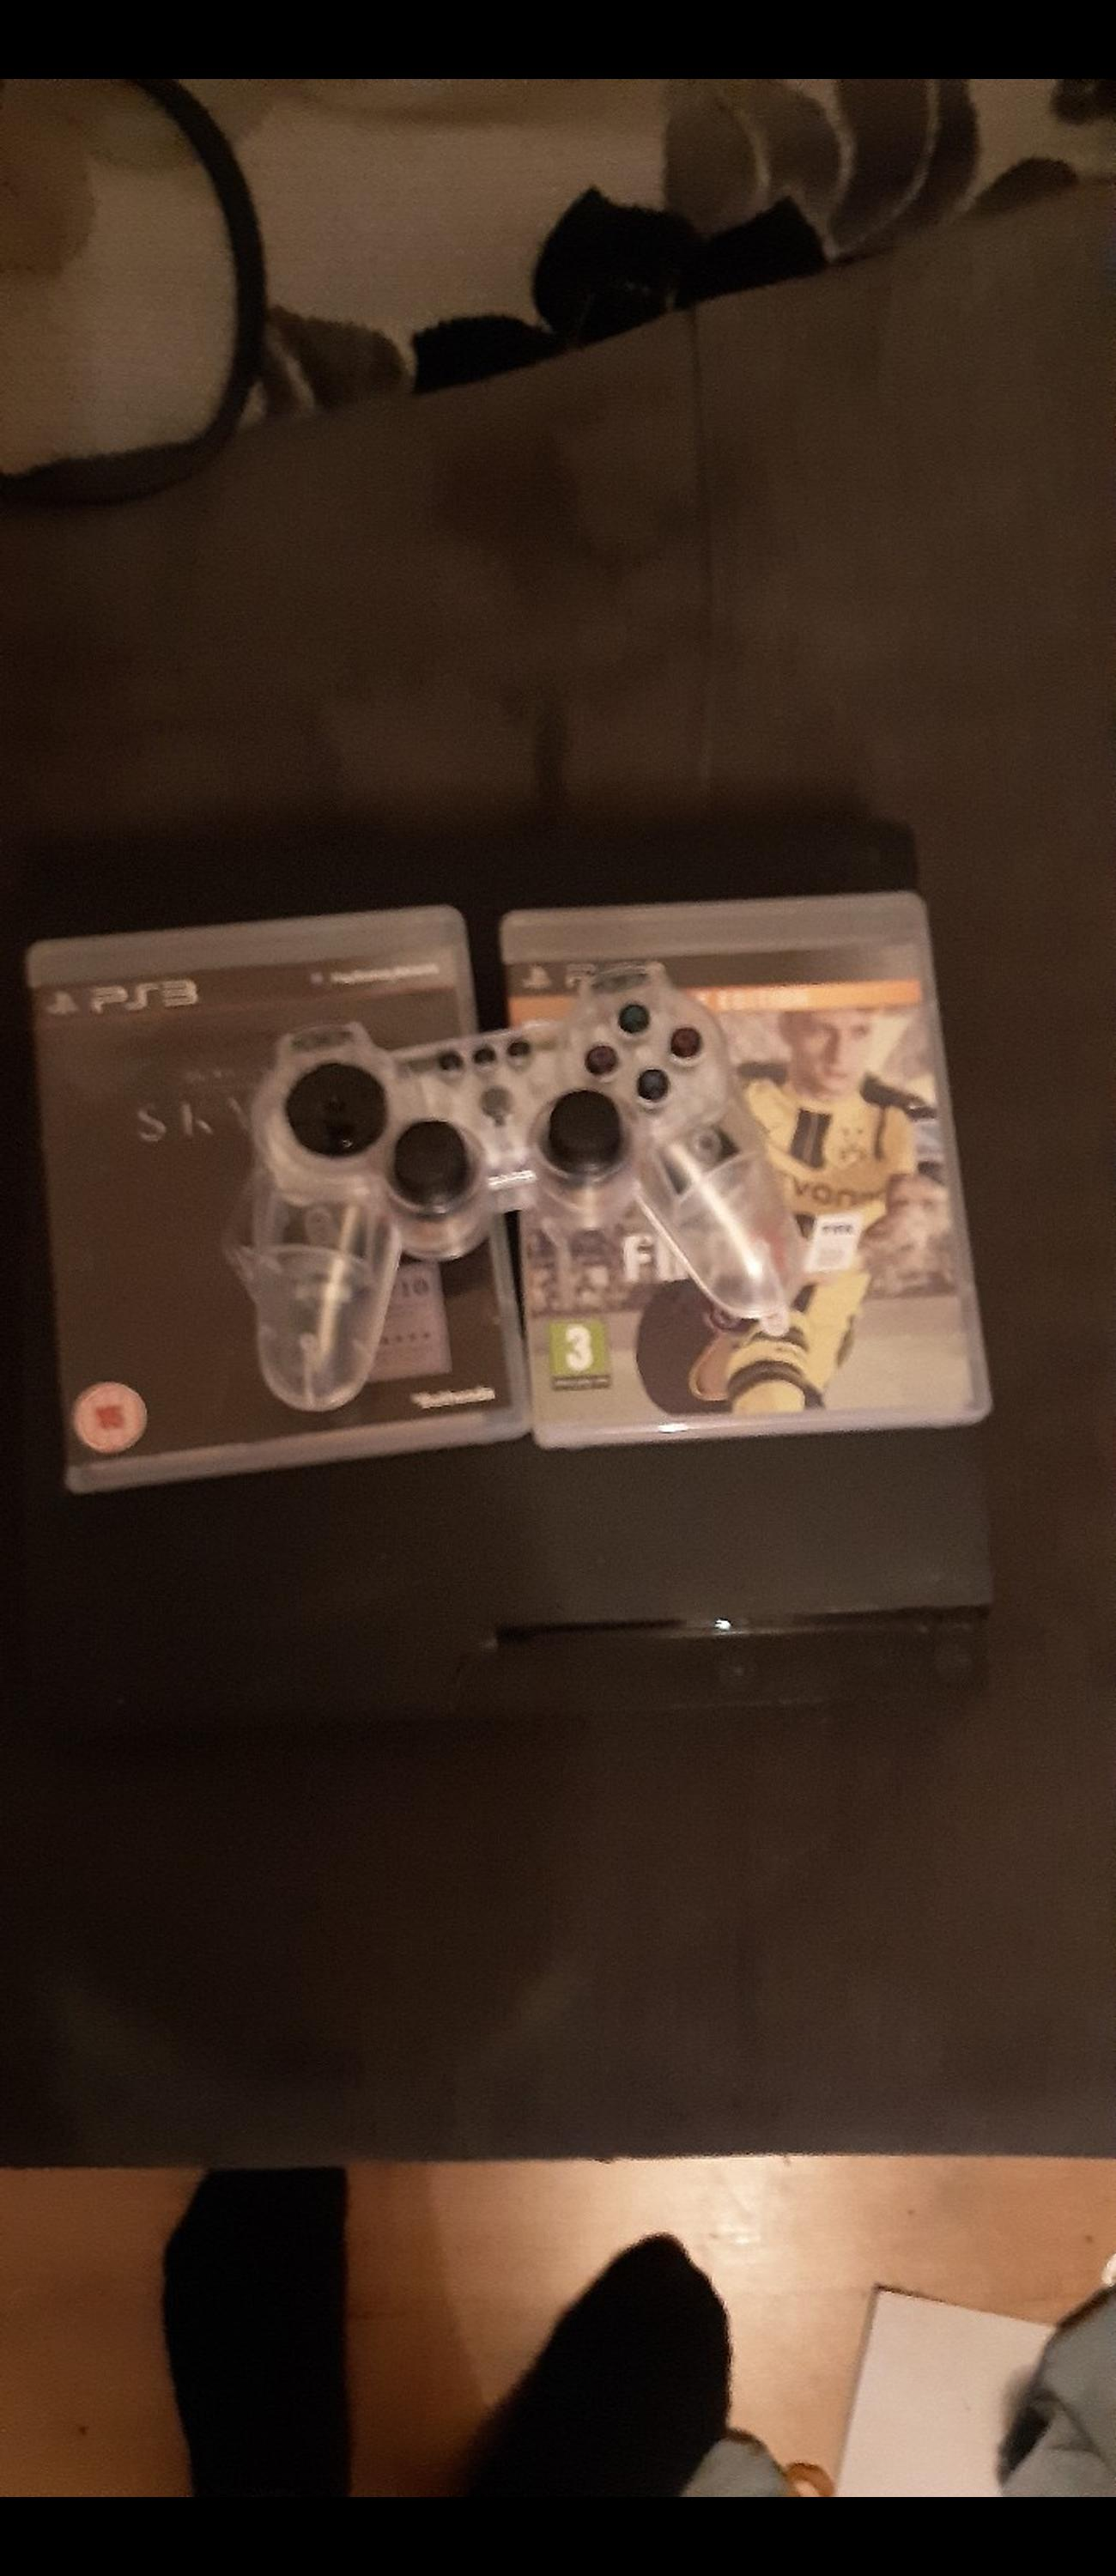 ps3 with control 2 games and power lead fully working